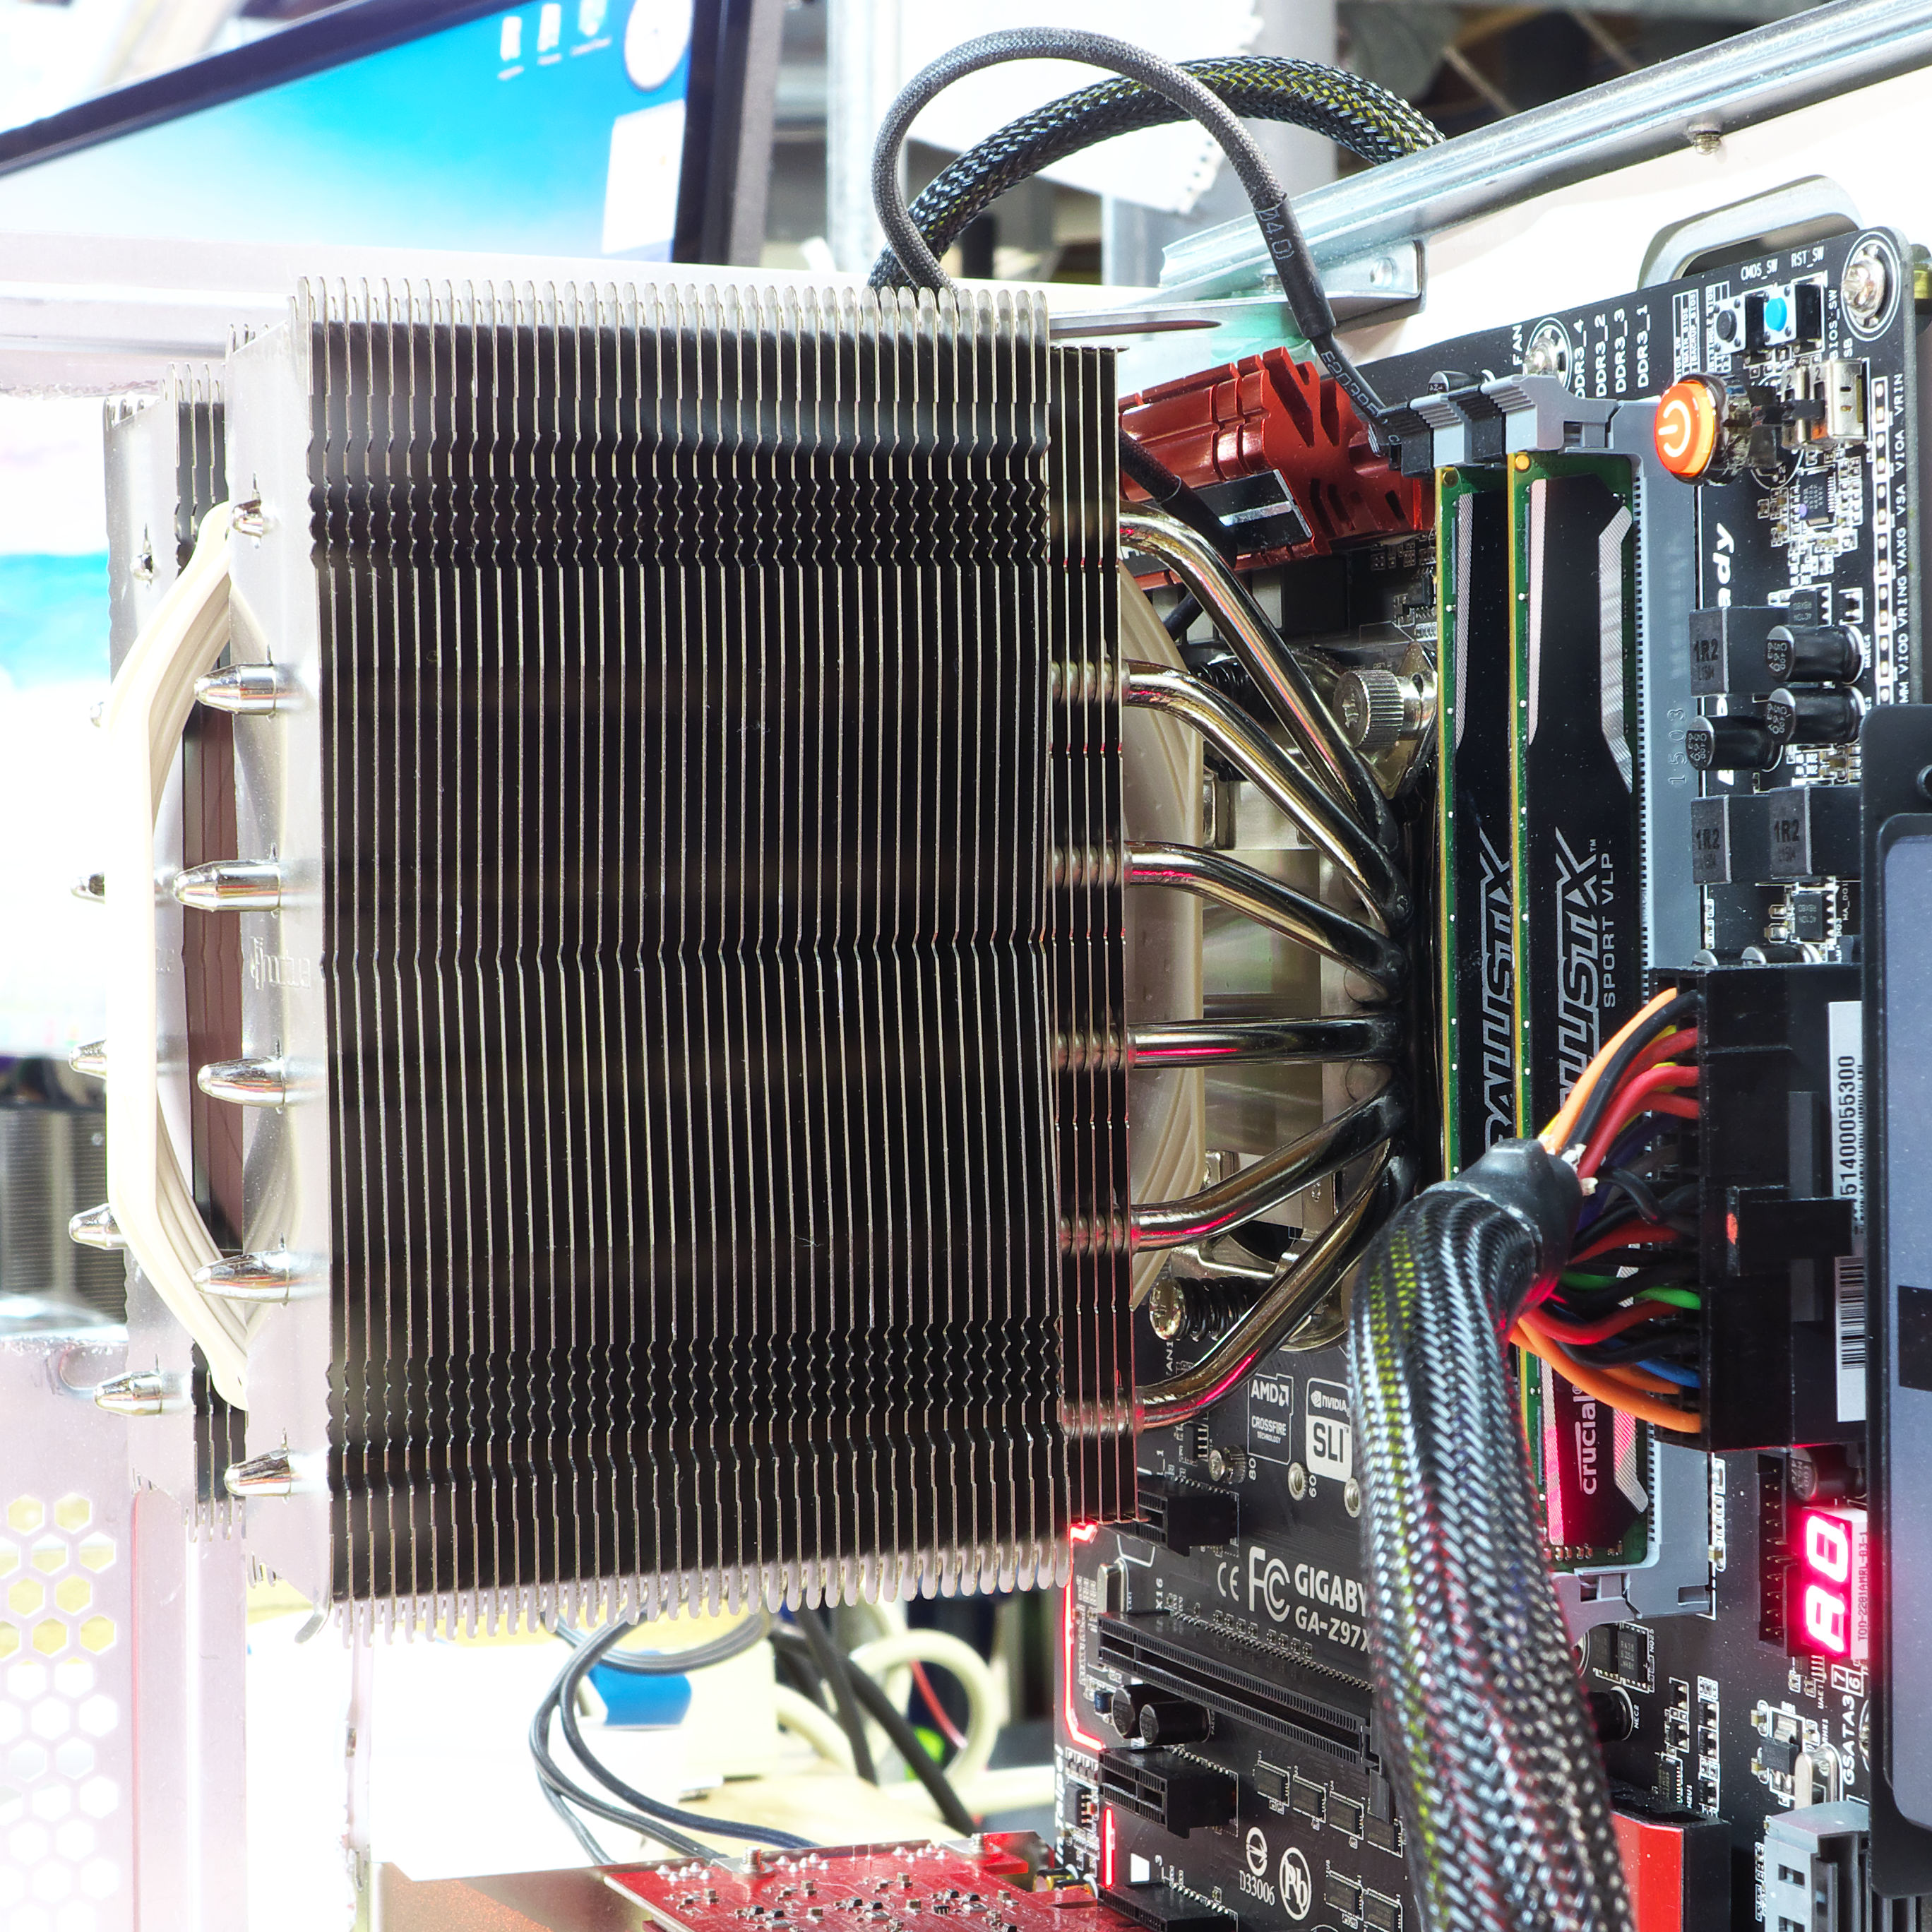 ATCS motherboard tray, used for testbed -- in action